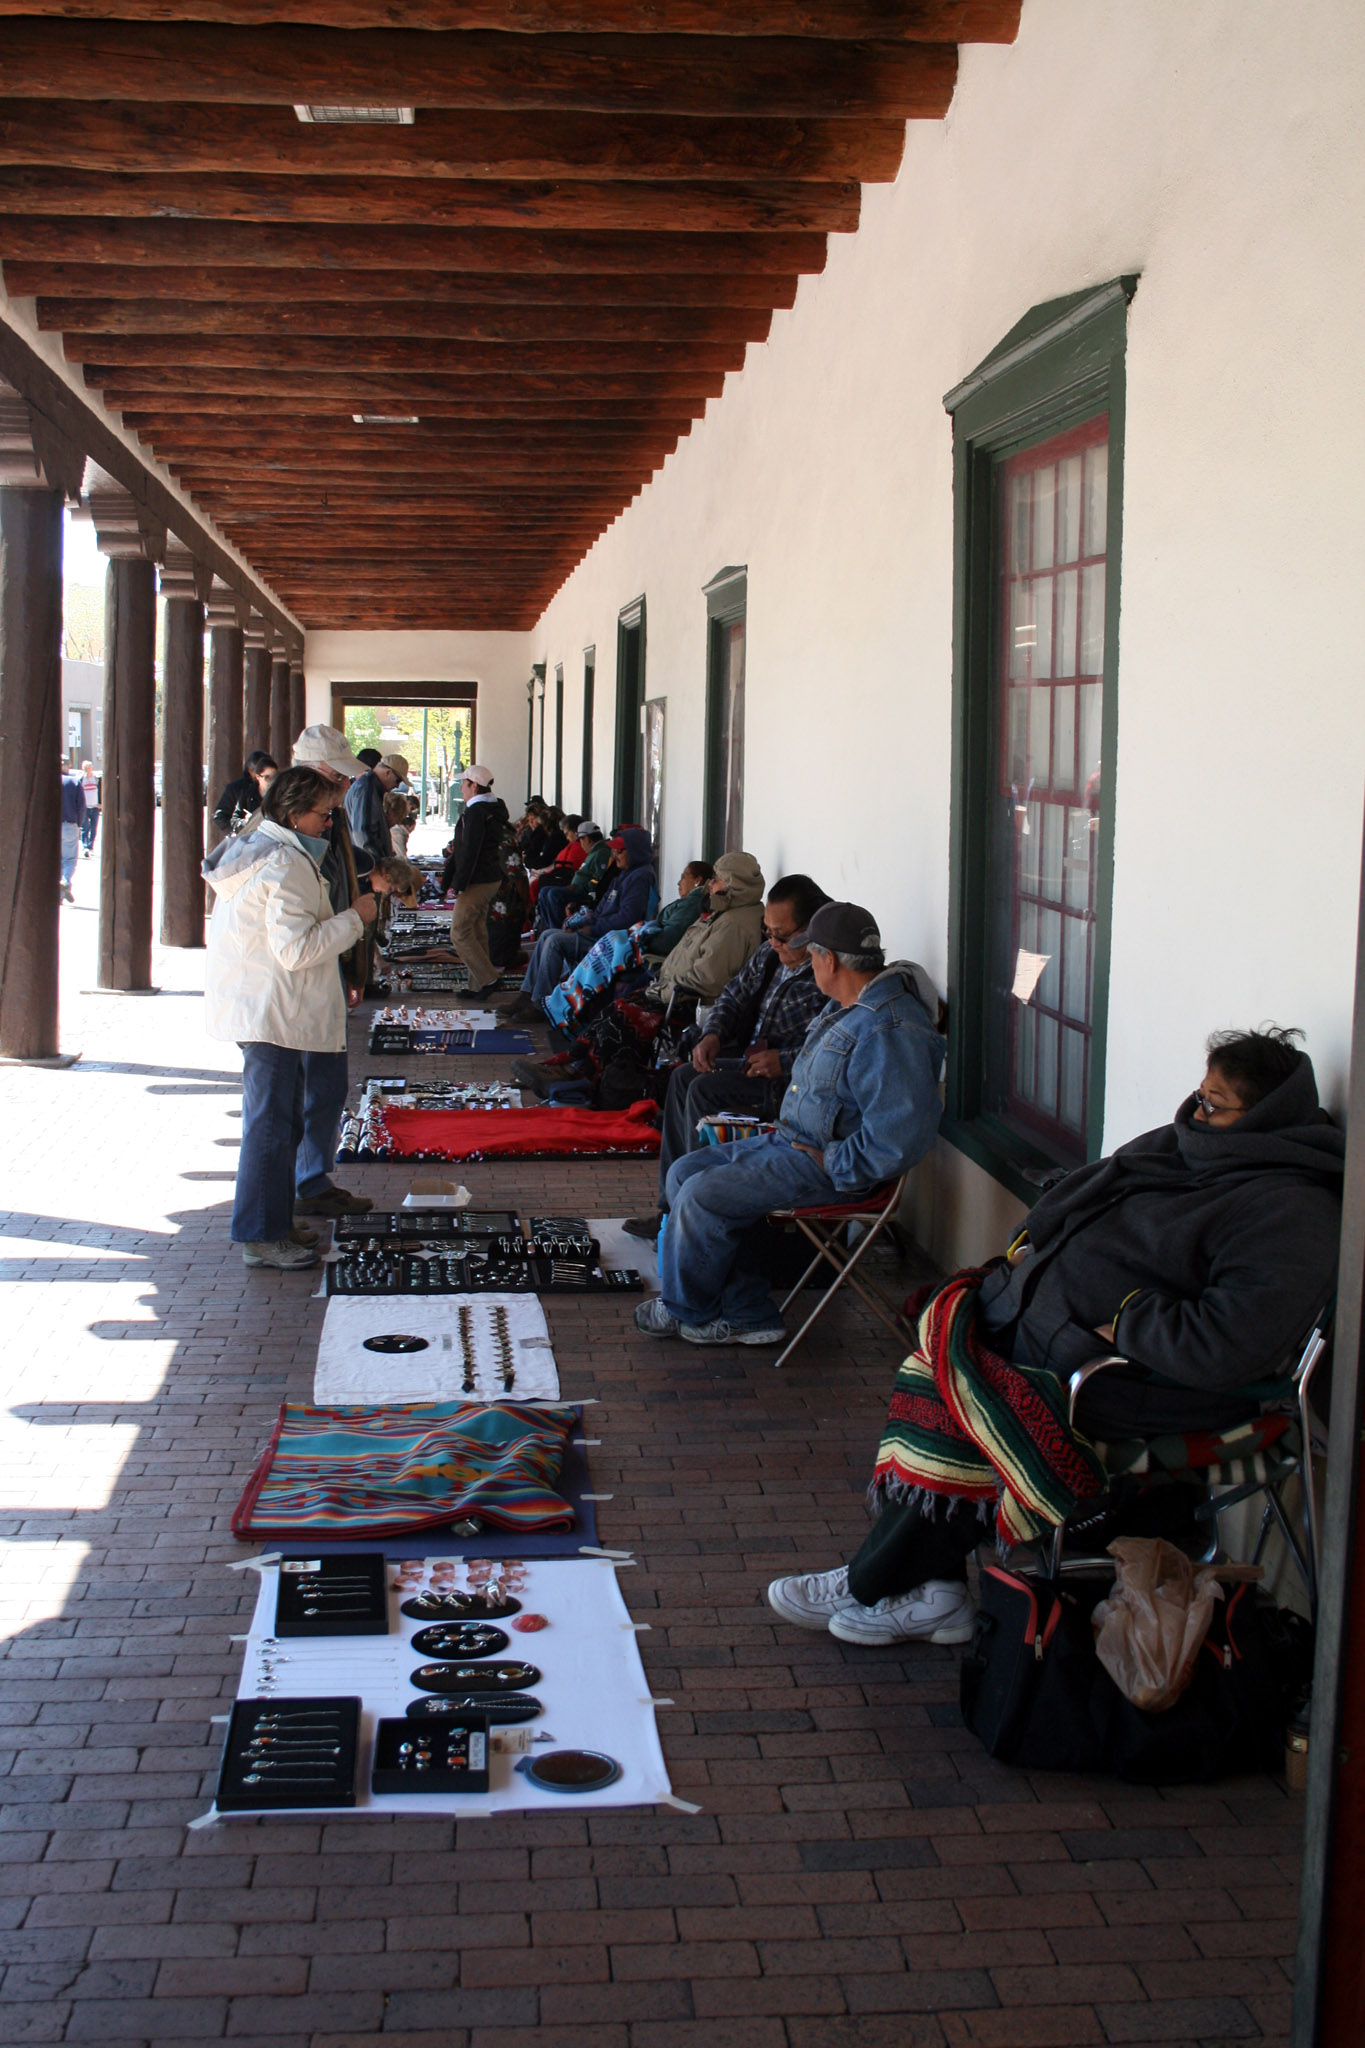 Native Jewelry in the Plaza